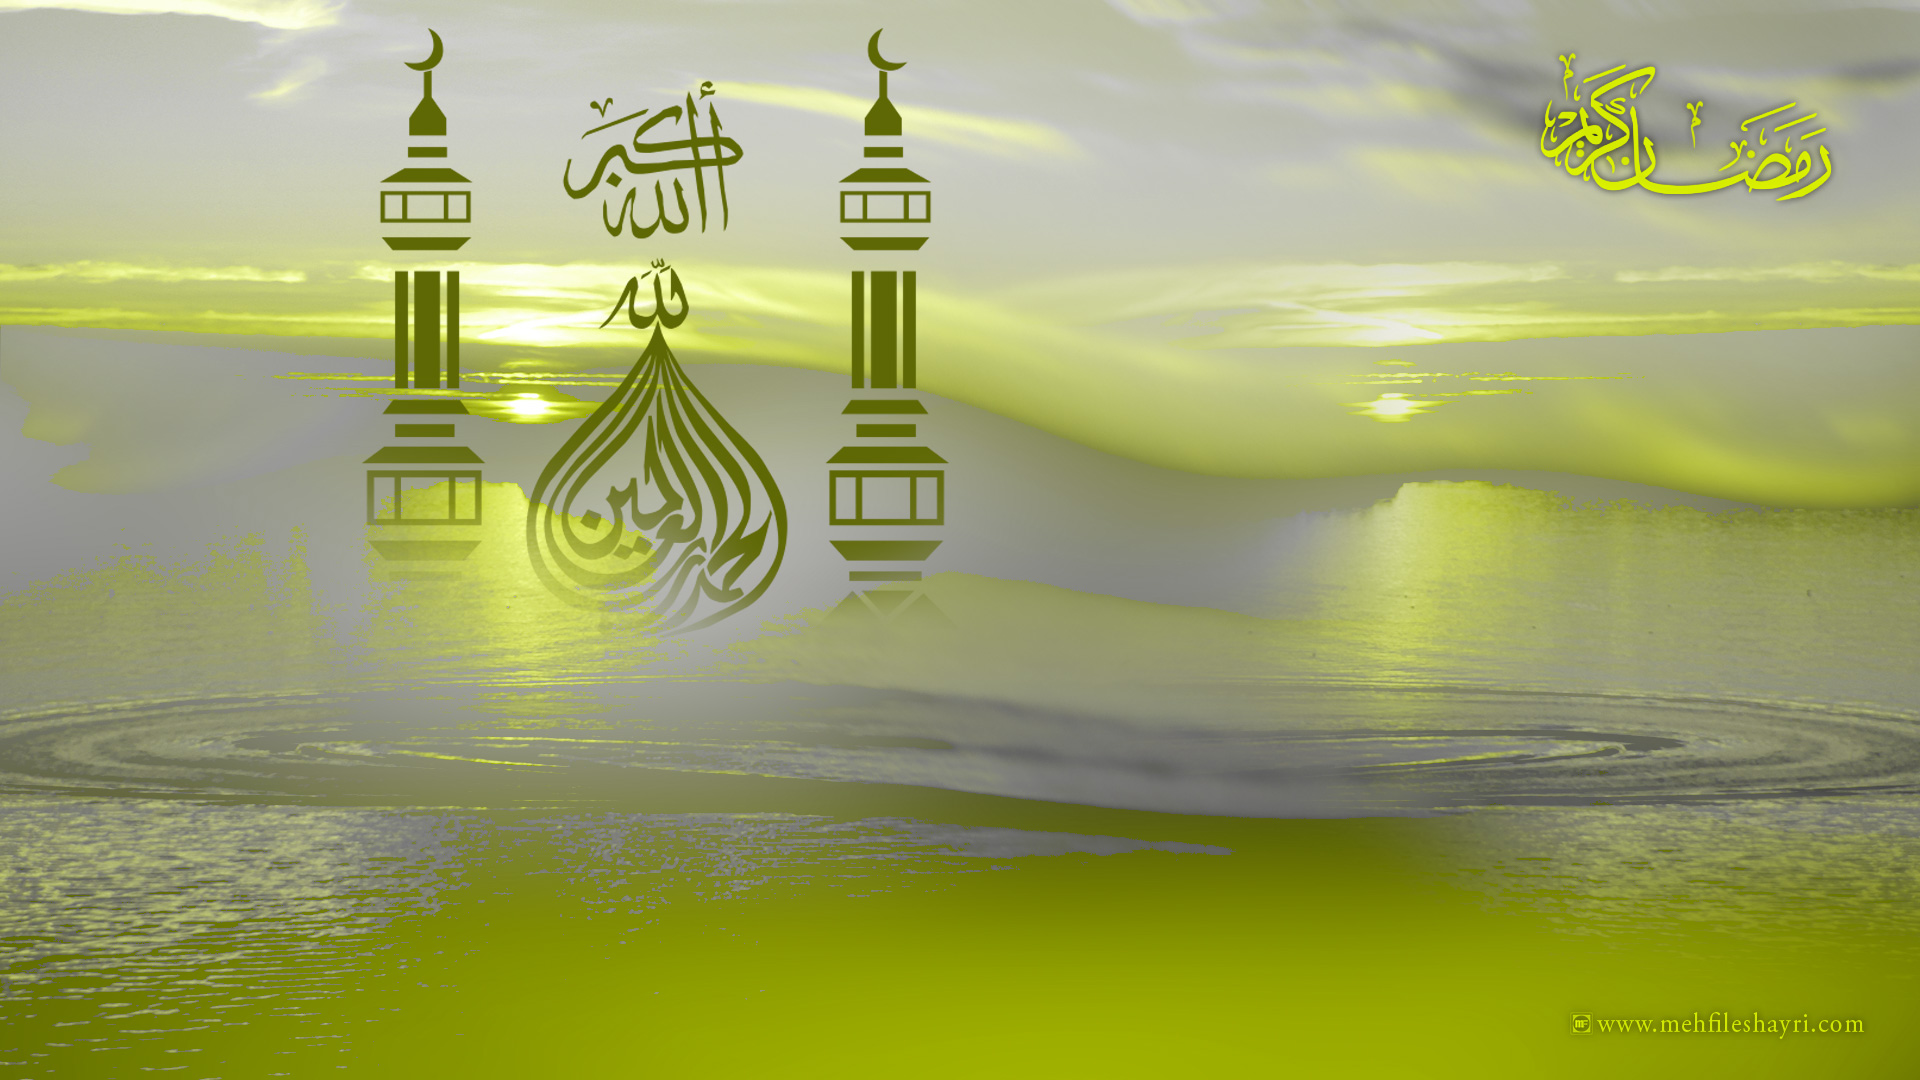 Hd wallpaper ramzan mubarak - Ramadan Mubarak Wallpapers 2013